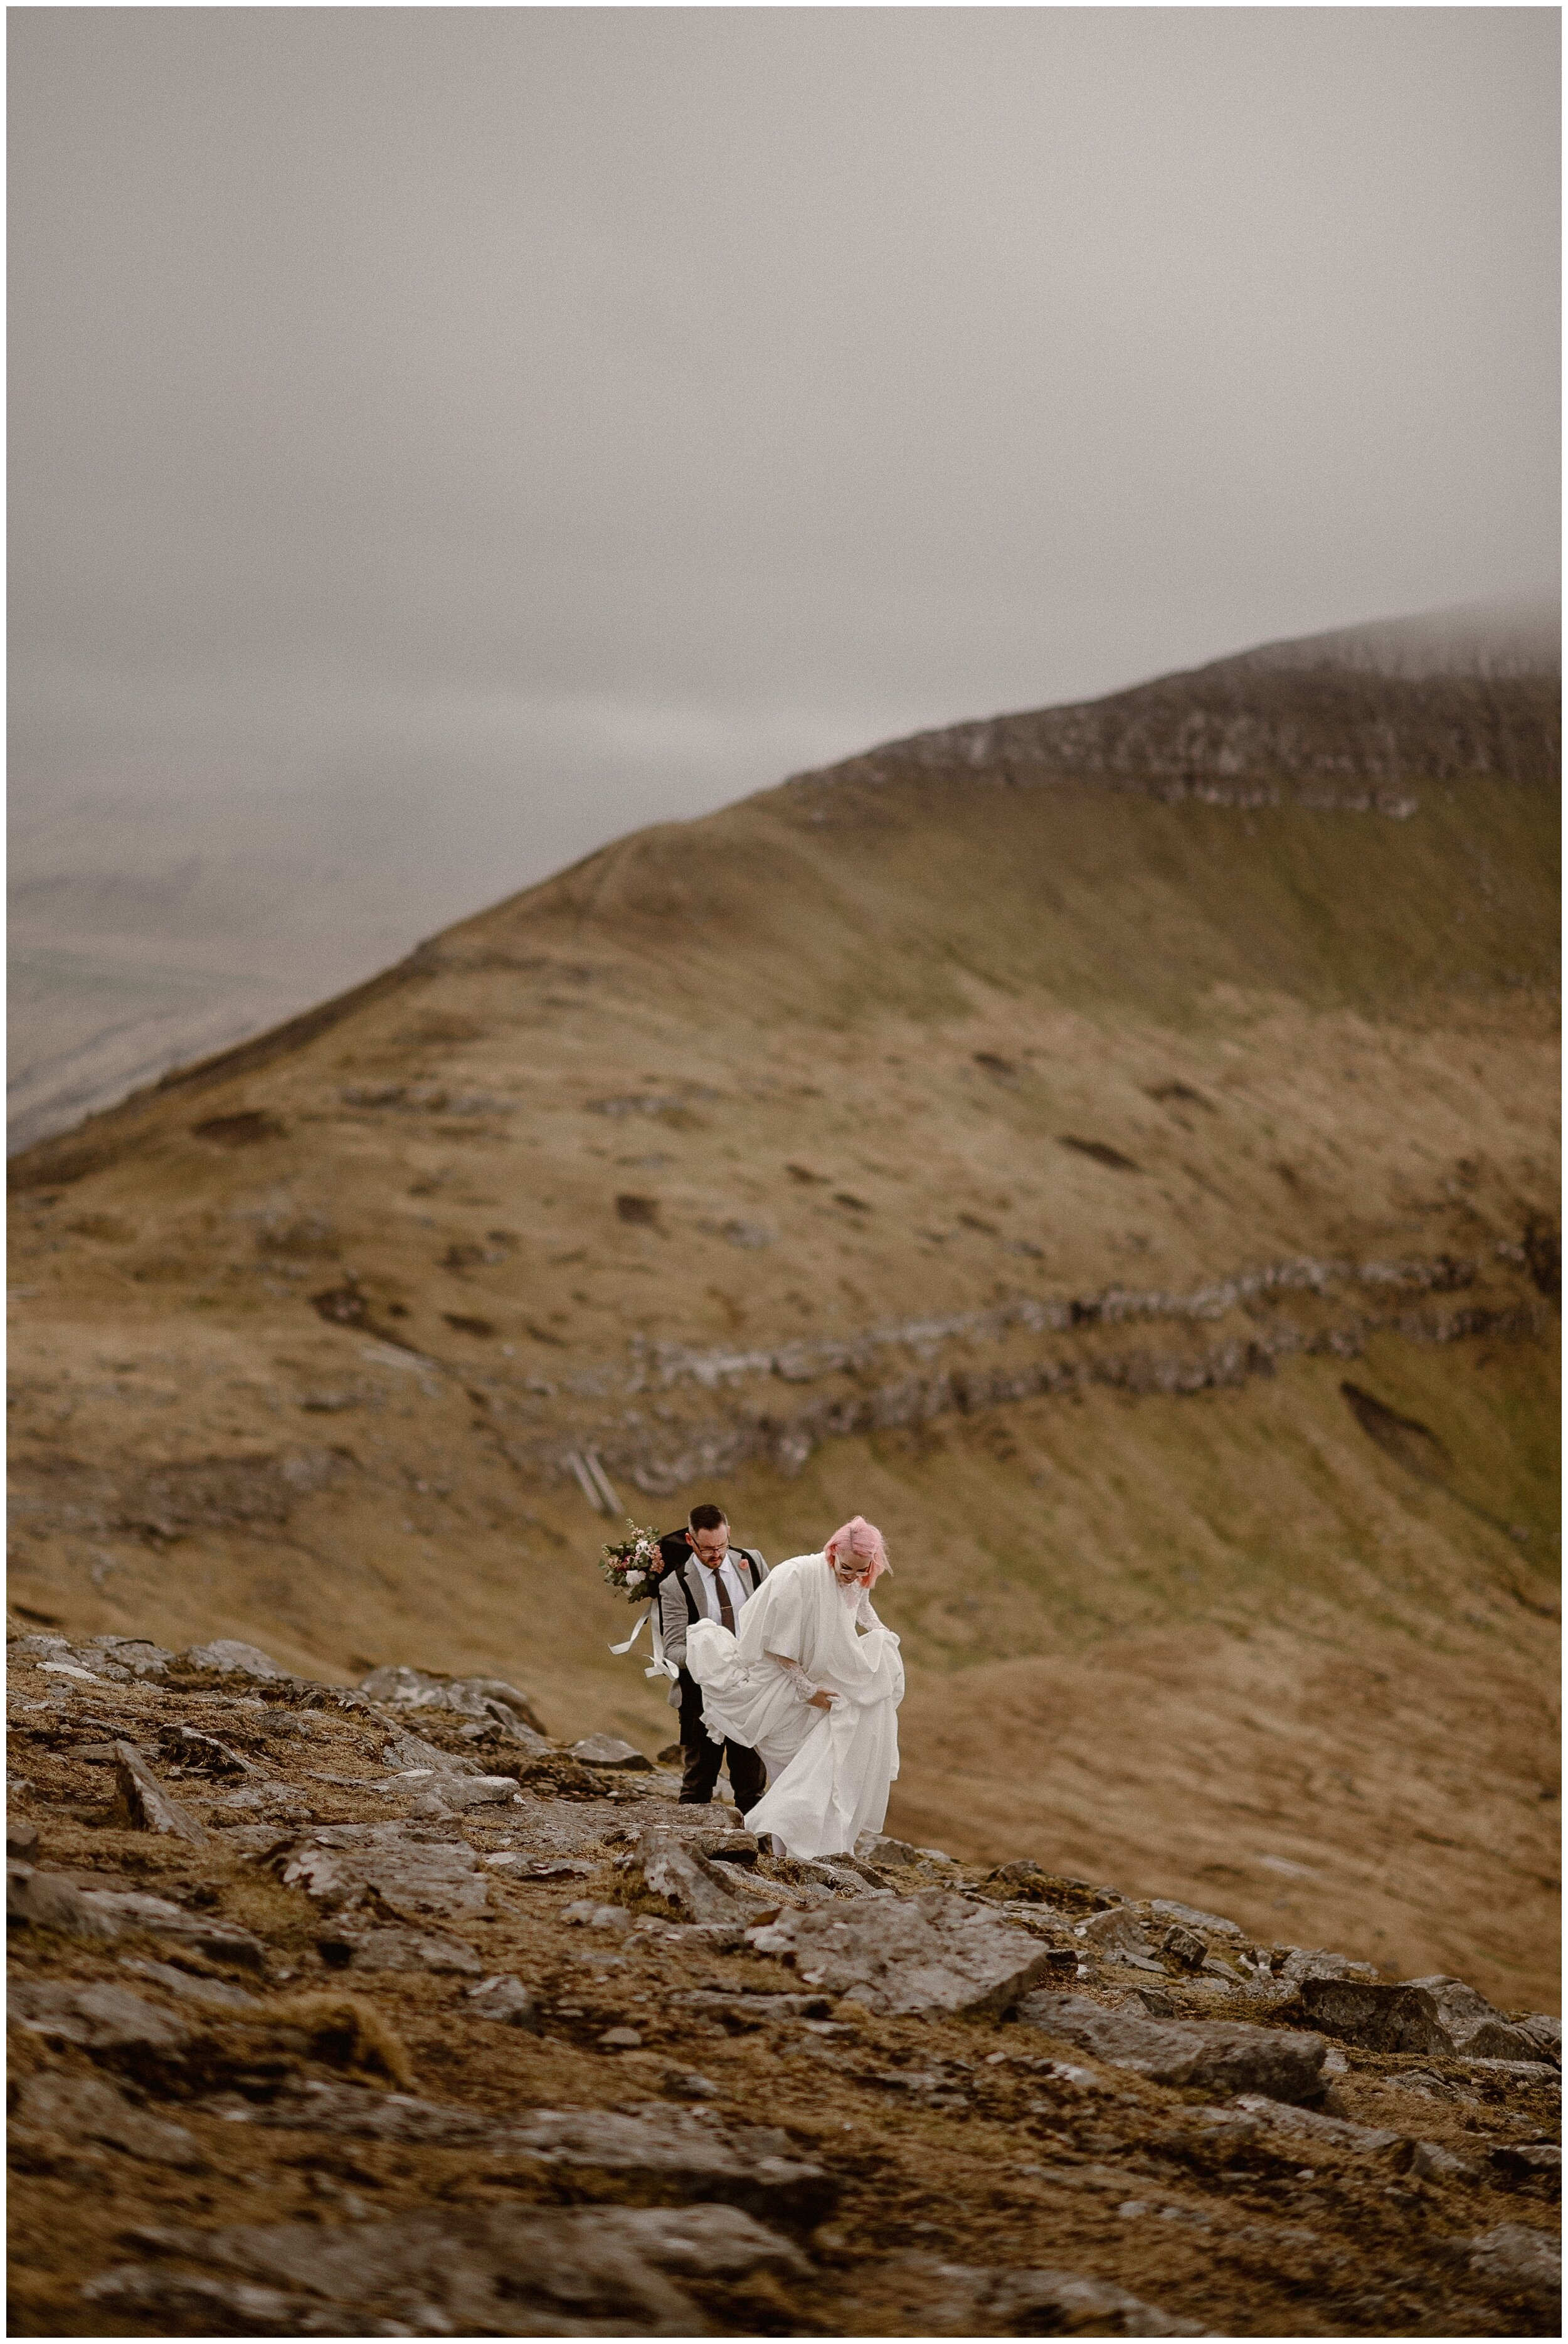 Elaura and Daryn begin the trek up to their hiking elopement in the Faroe Islands. These adventure elopement photos were captured by Adventure Instead, an elopement wedding photographer.